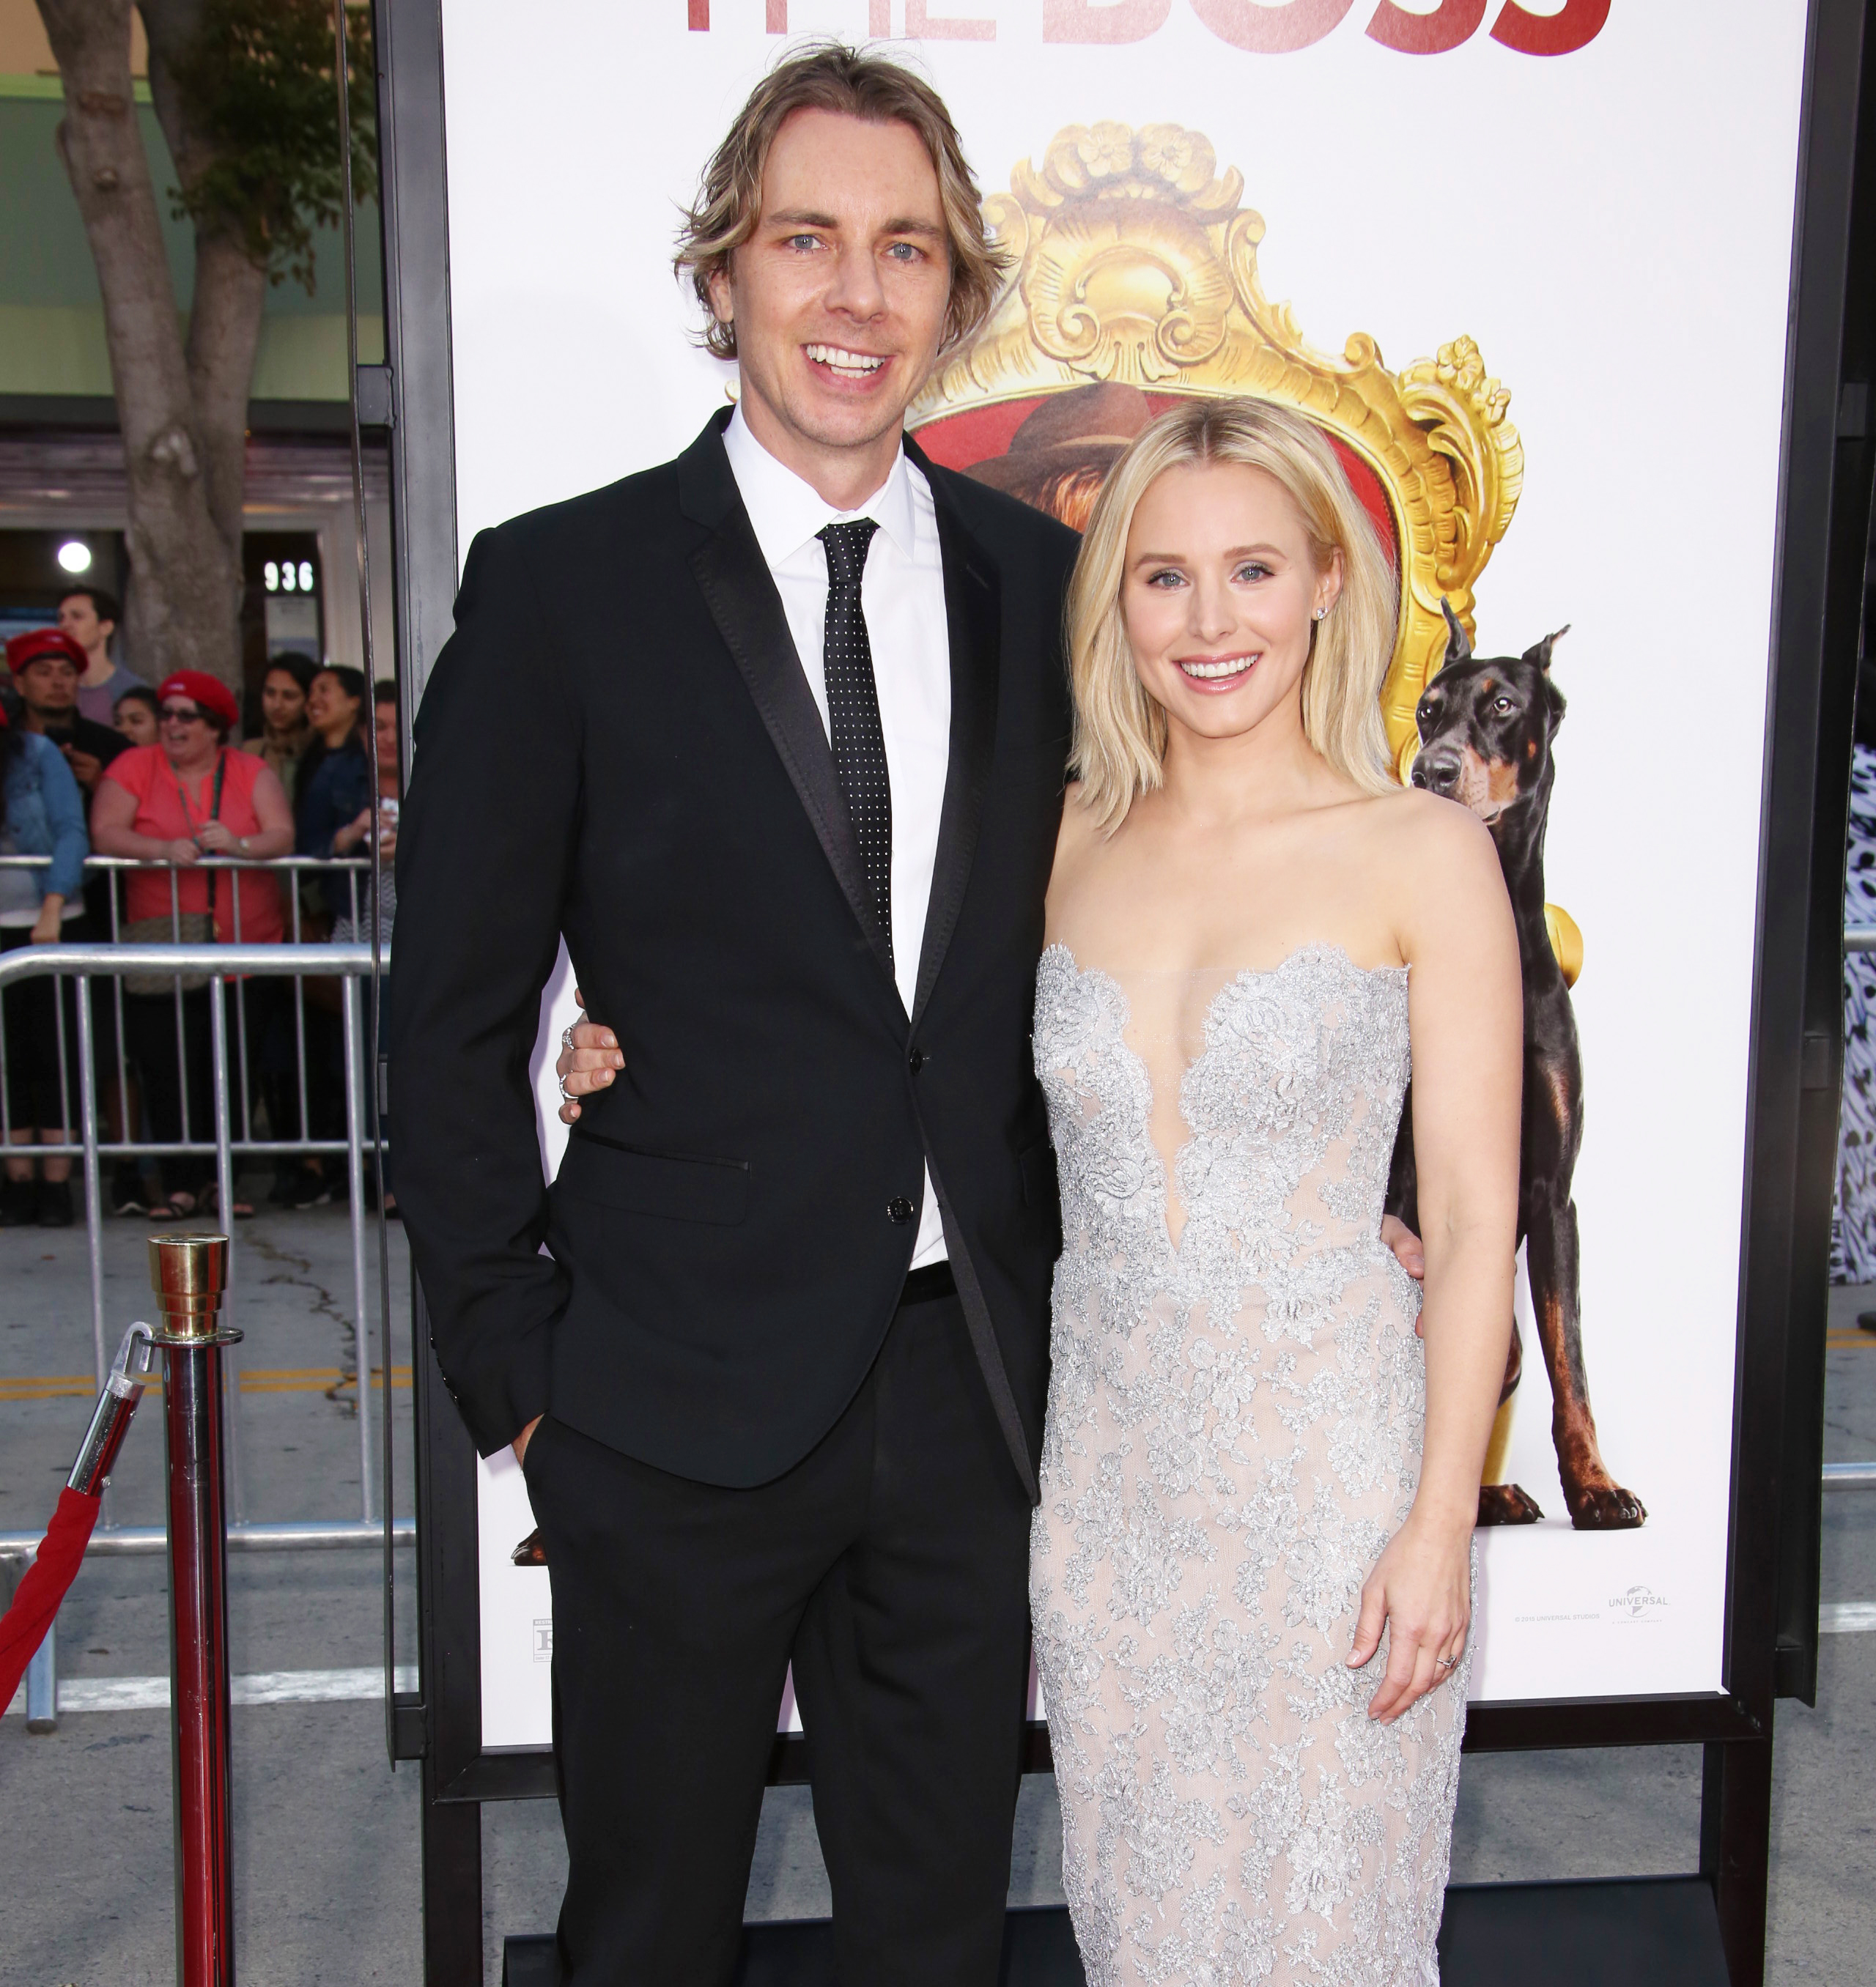 Kristen Bell Says Dax Shepard Is Safe After Motorcycle Accident Kristen bell height 5 feet 1 inches (155 cm/ 1.5 m) and weight 48 kg (110 lbs). kristen bell says dax shepard is safe